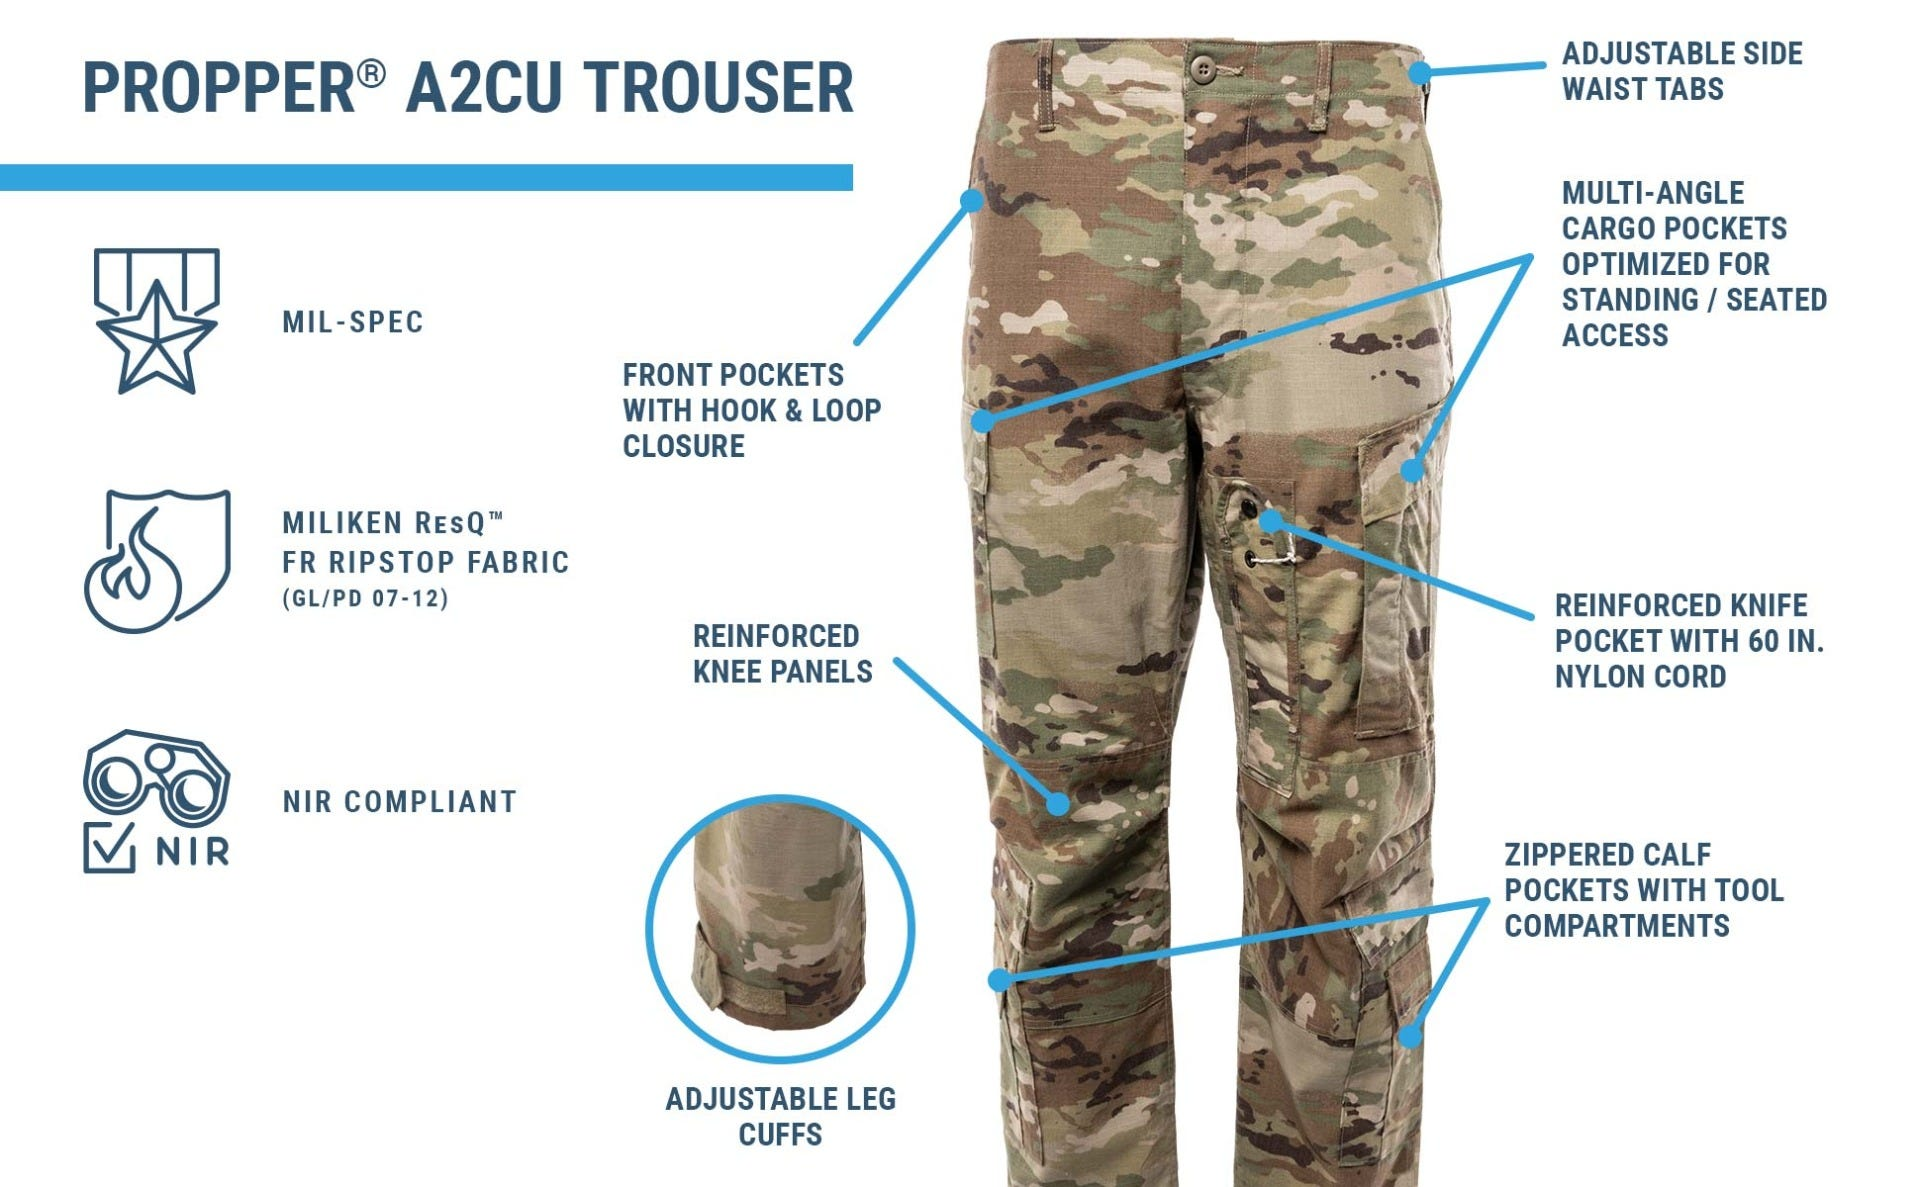 Two piece flight suit pant in OCP with reinforced knees, zipper calf pockets, knife cord